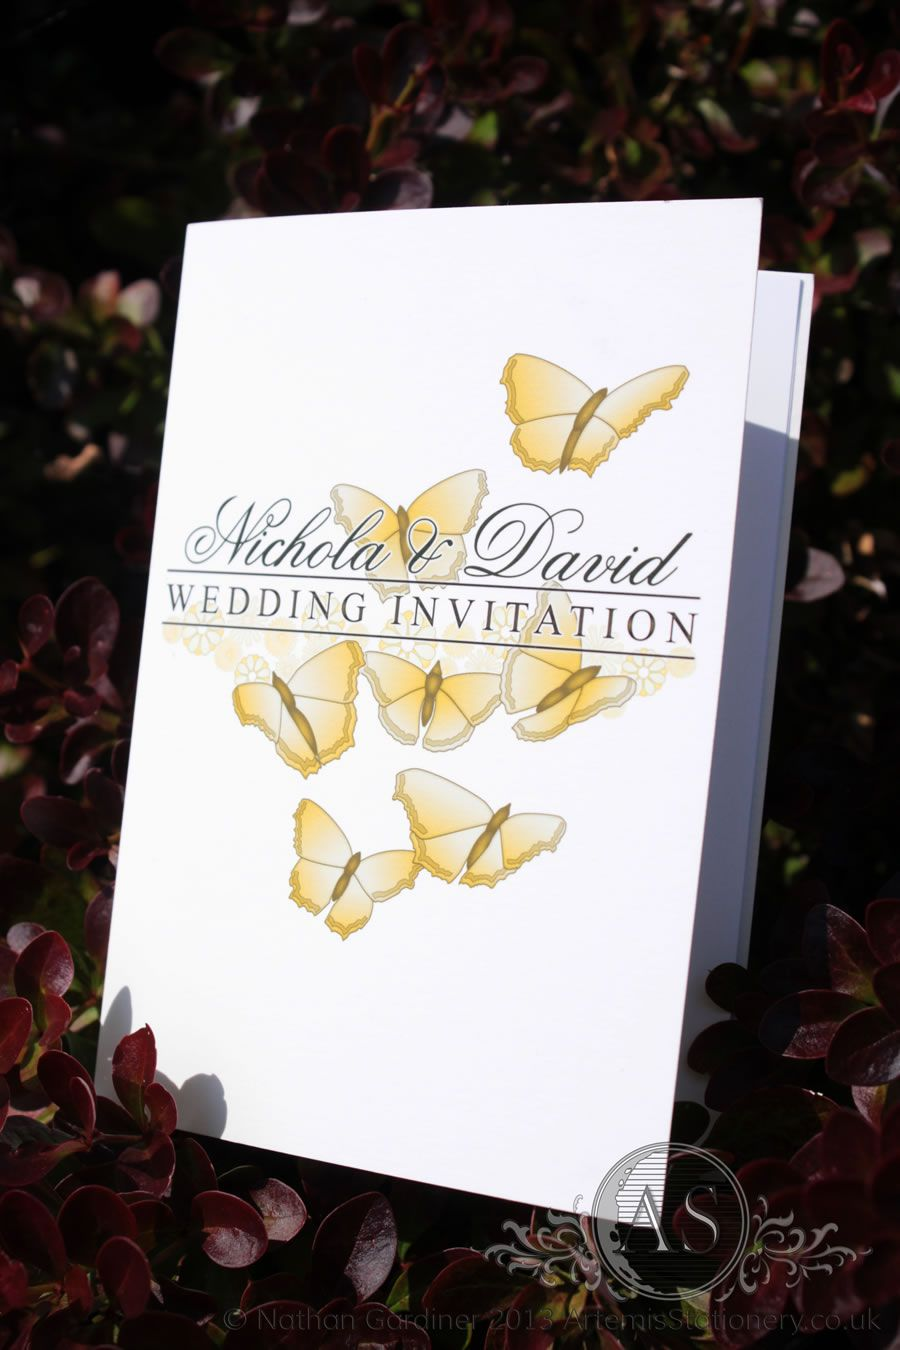 Naples small card wedding invitation featuring butterflies gold ...